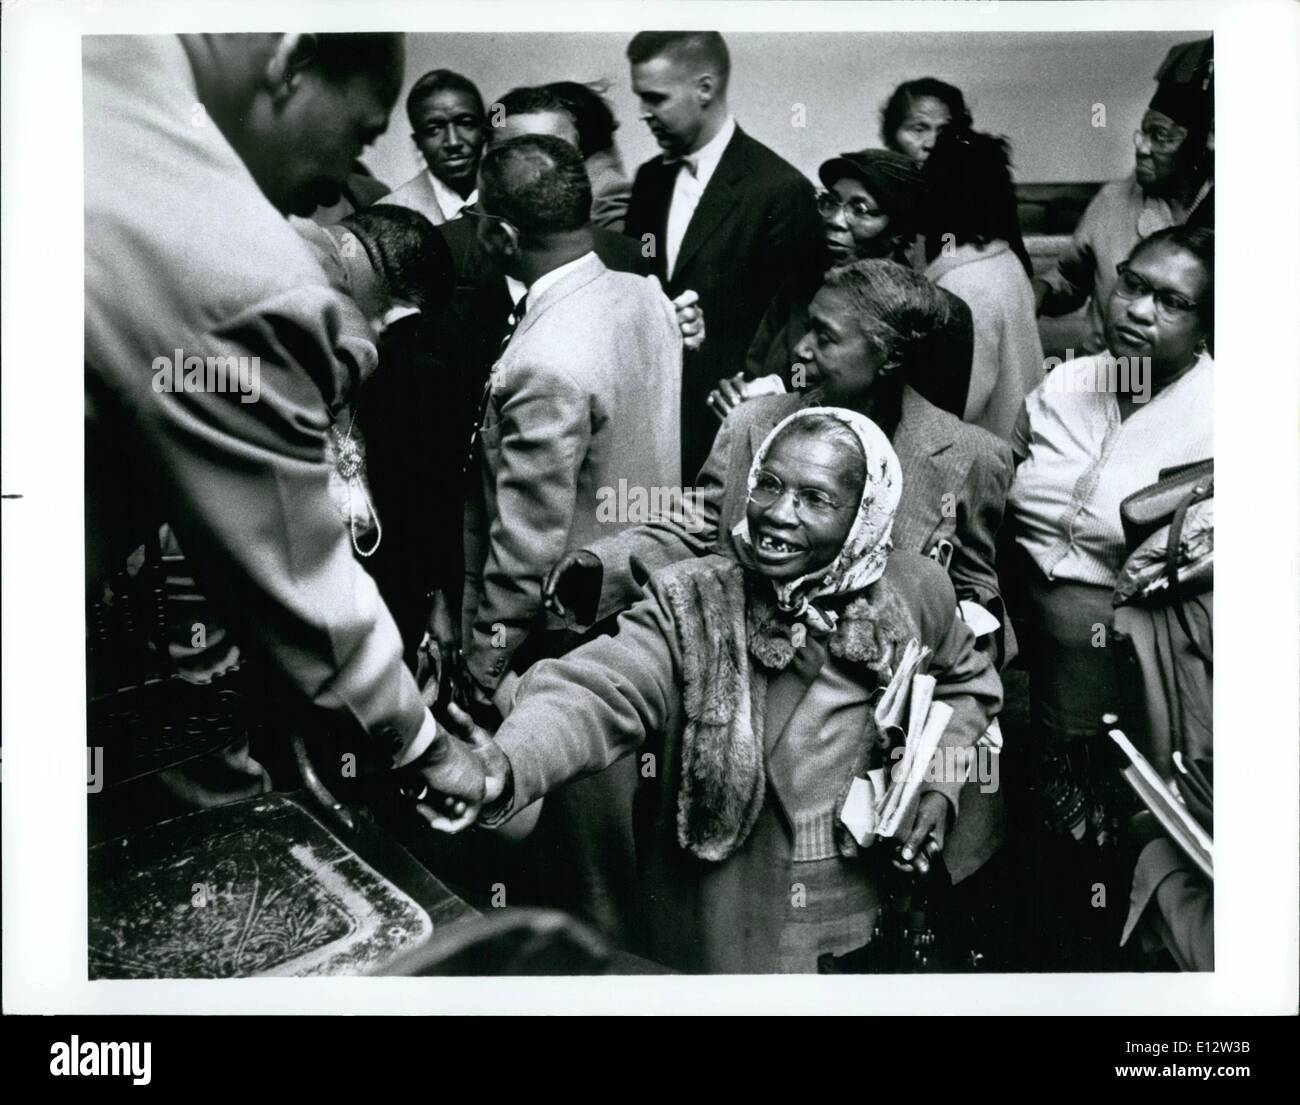 Feb. 25, 2012 - Reverend Martin Luther King Jr. March to Vision's End Stock Photo